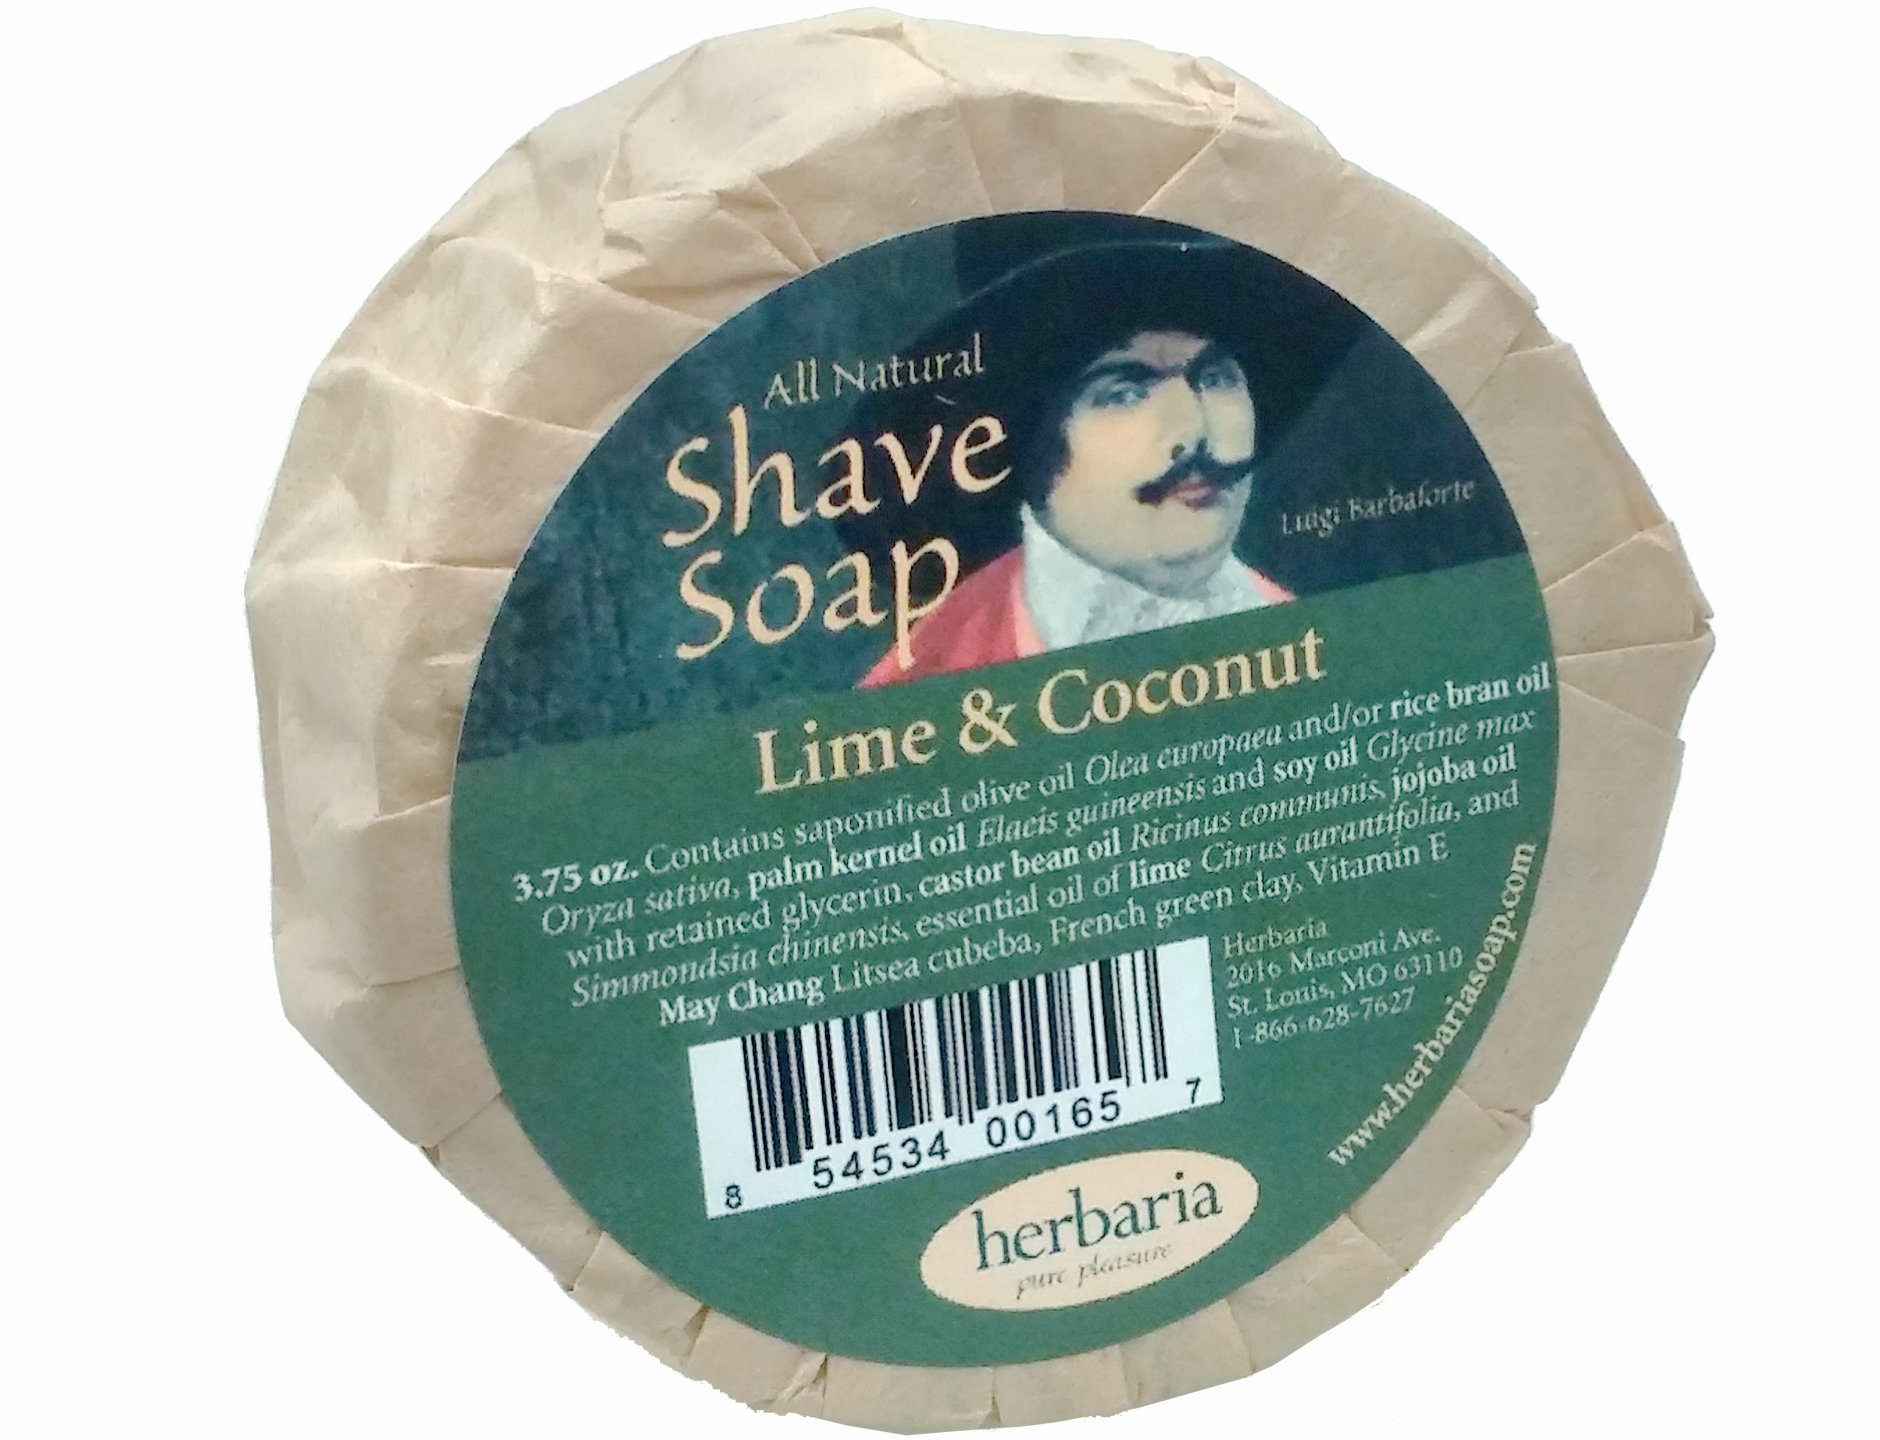 Herbaria Shaving Soap Lime & Coconut Oil all natural with essential oils 3.5 oz